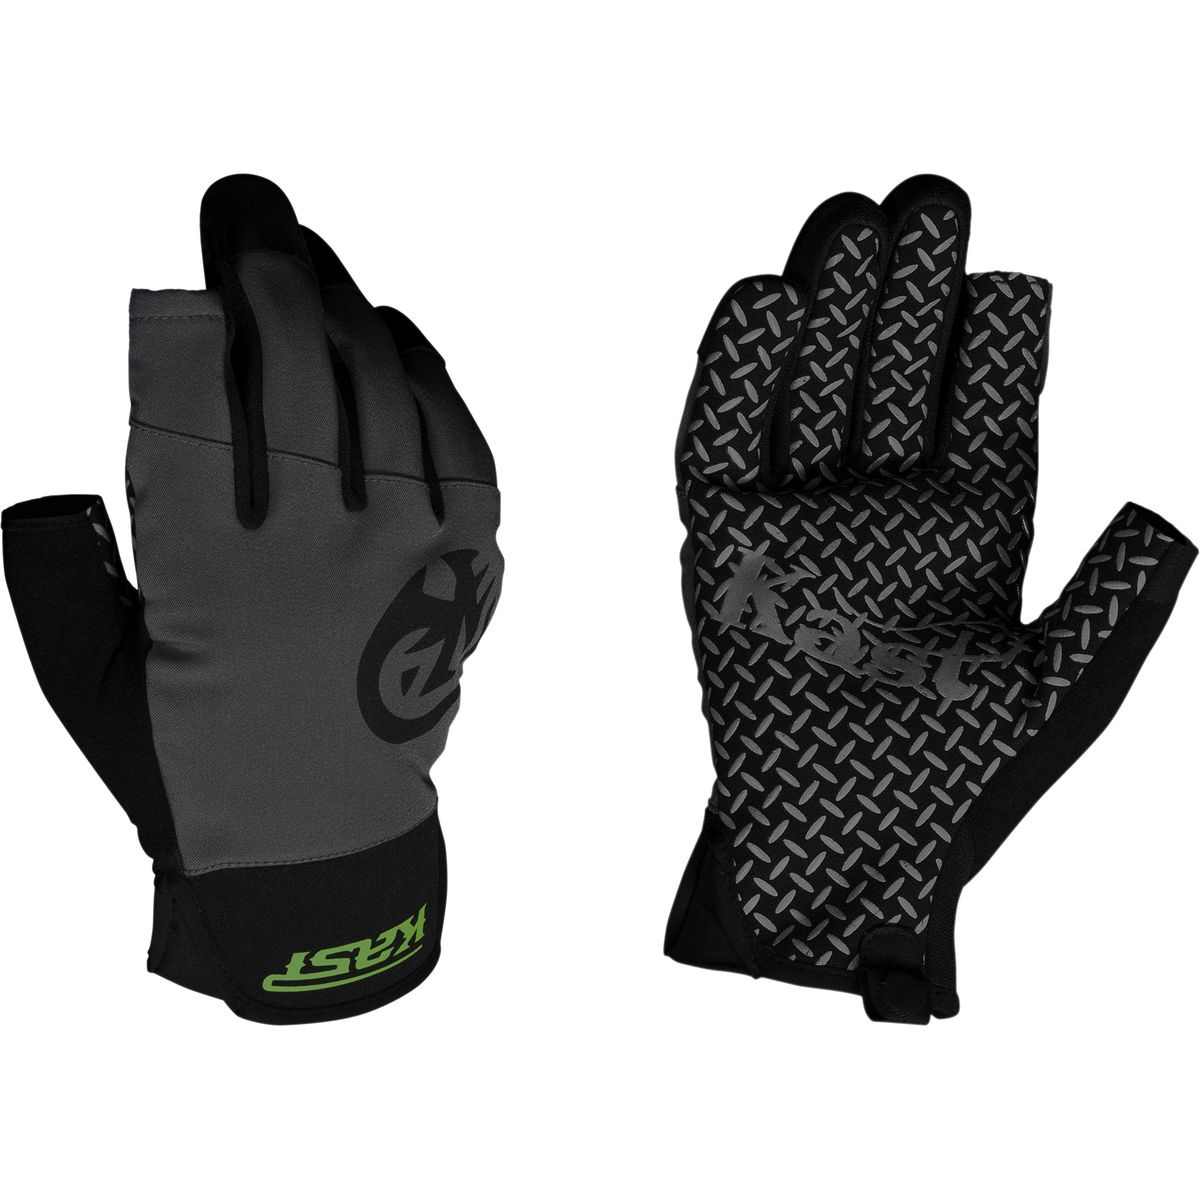 Kast Gear Raptor Trigger Glove Slate Grey Black S